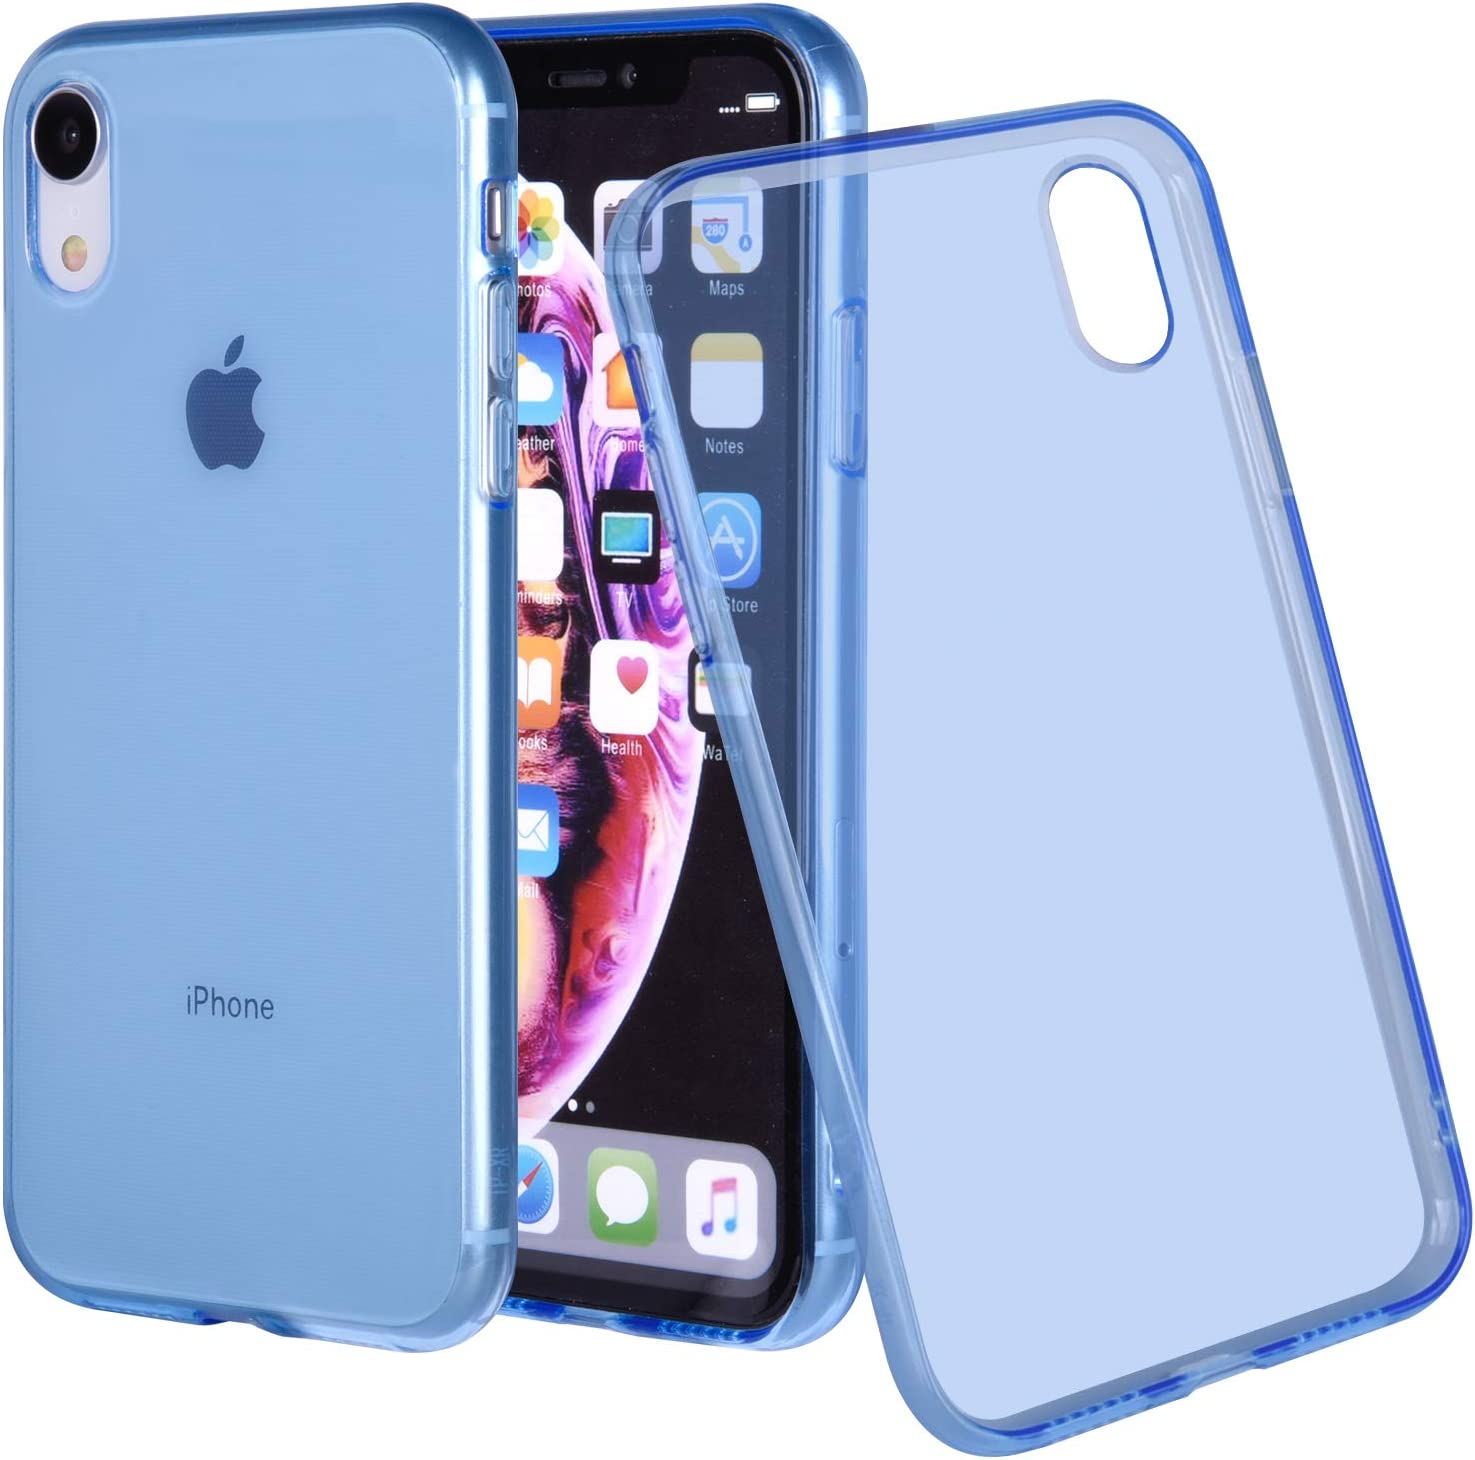 Wisdompro iPhone XR Case, Bundle of 5 Pack Extra Thin Slim Jelly Soft TPU Gel Protective Case Cover for Apple iPhone XR (Blue, Aqua Blue, Hot Pink, Yellow, Red)- Transparent Color